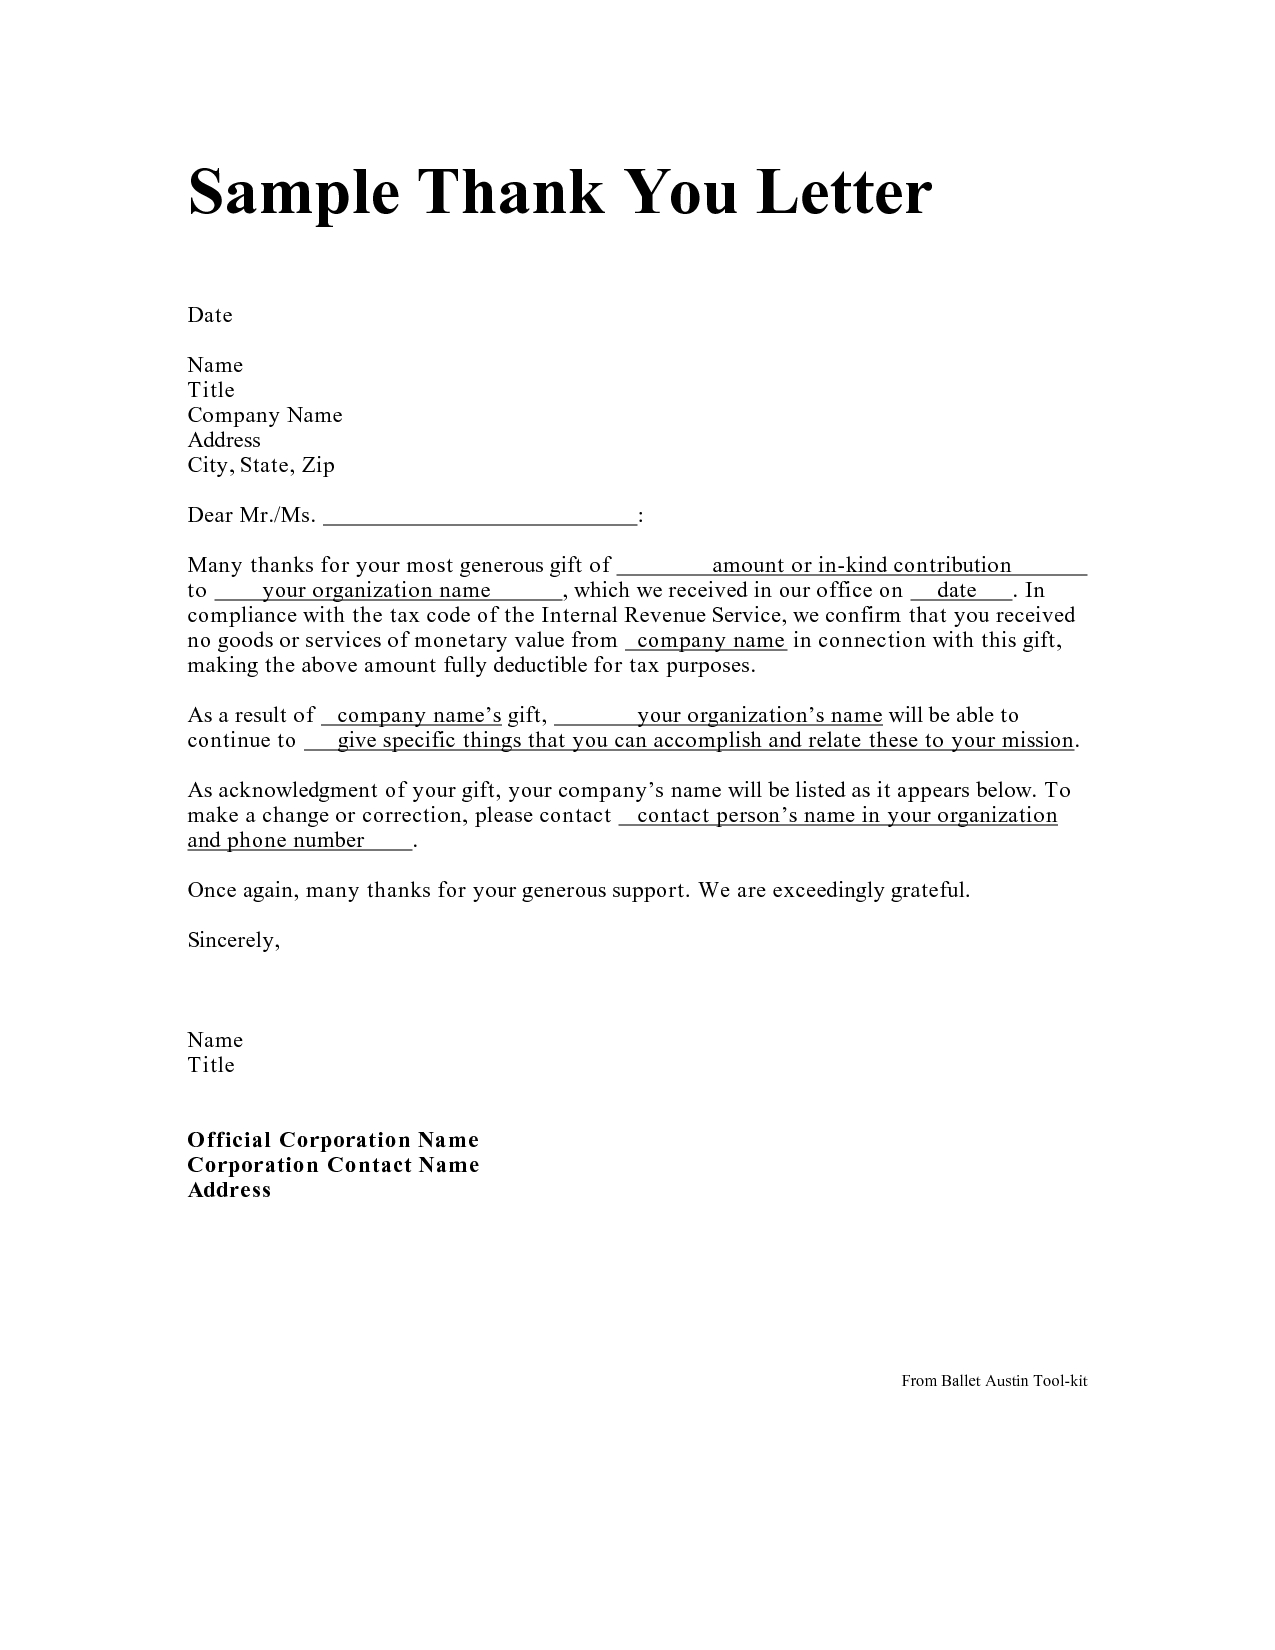 Donor Acknowledgement Letter Template - Personal Thank You Letter Personal Thank You Letter Samples